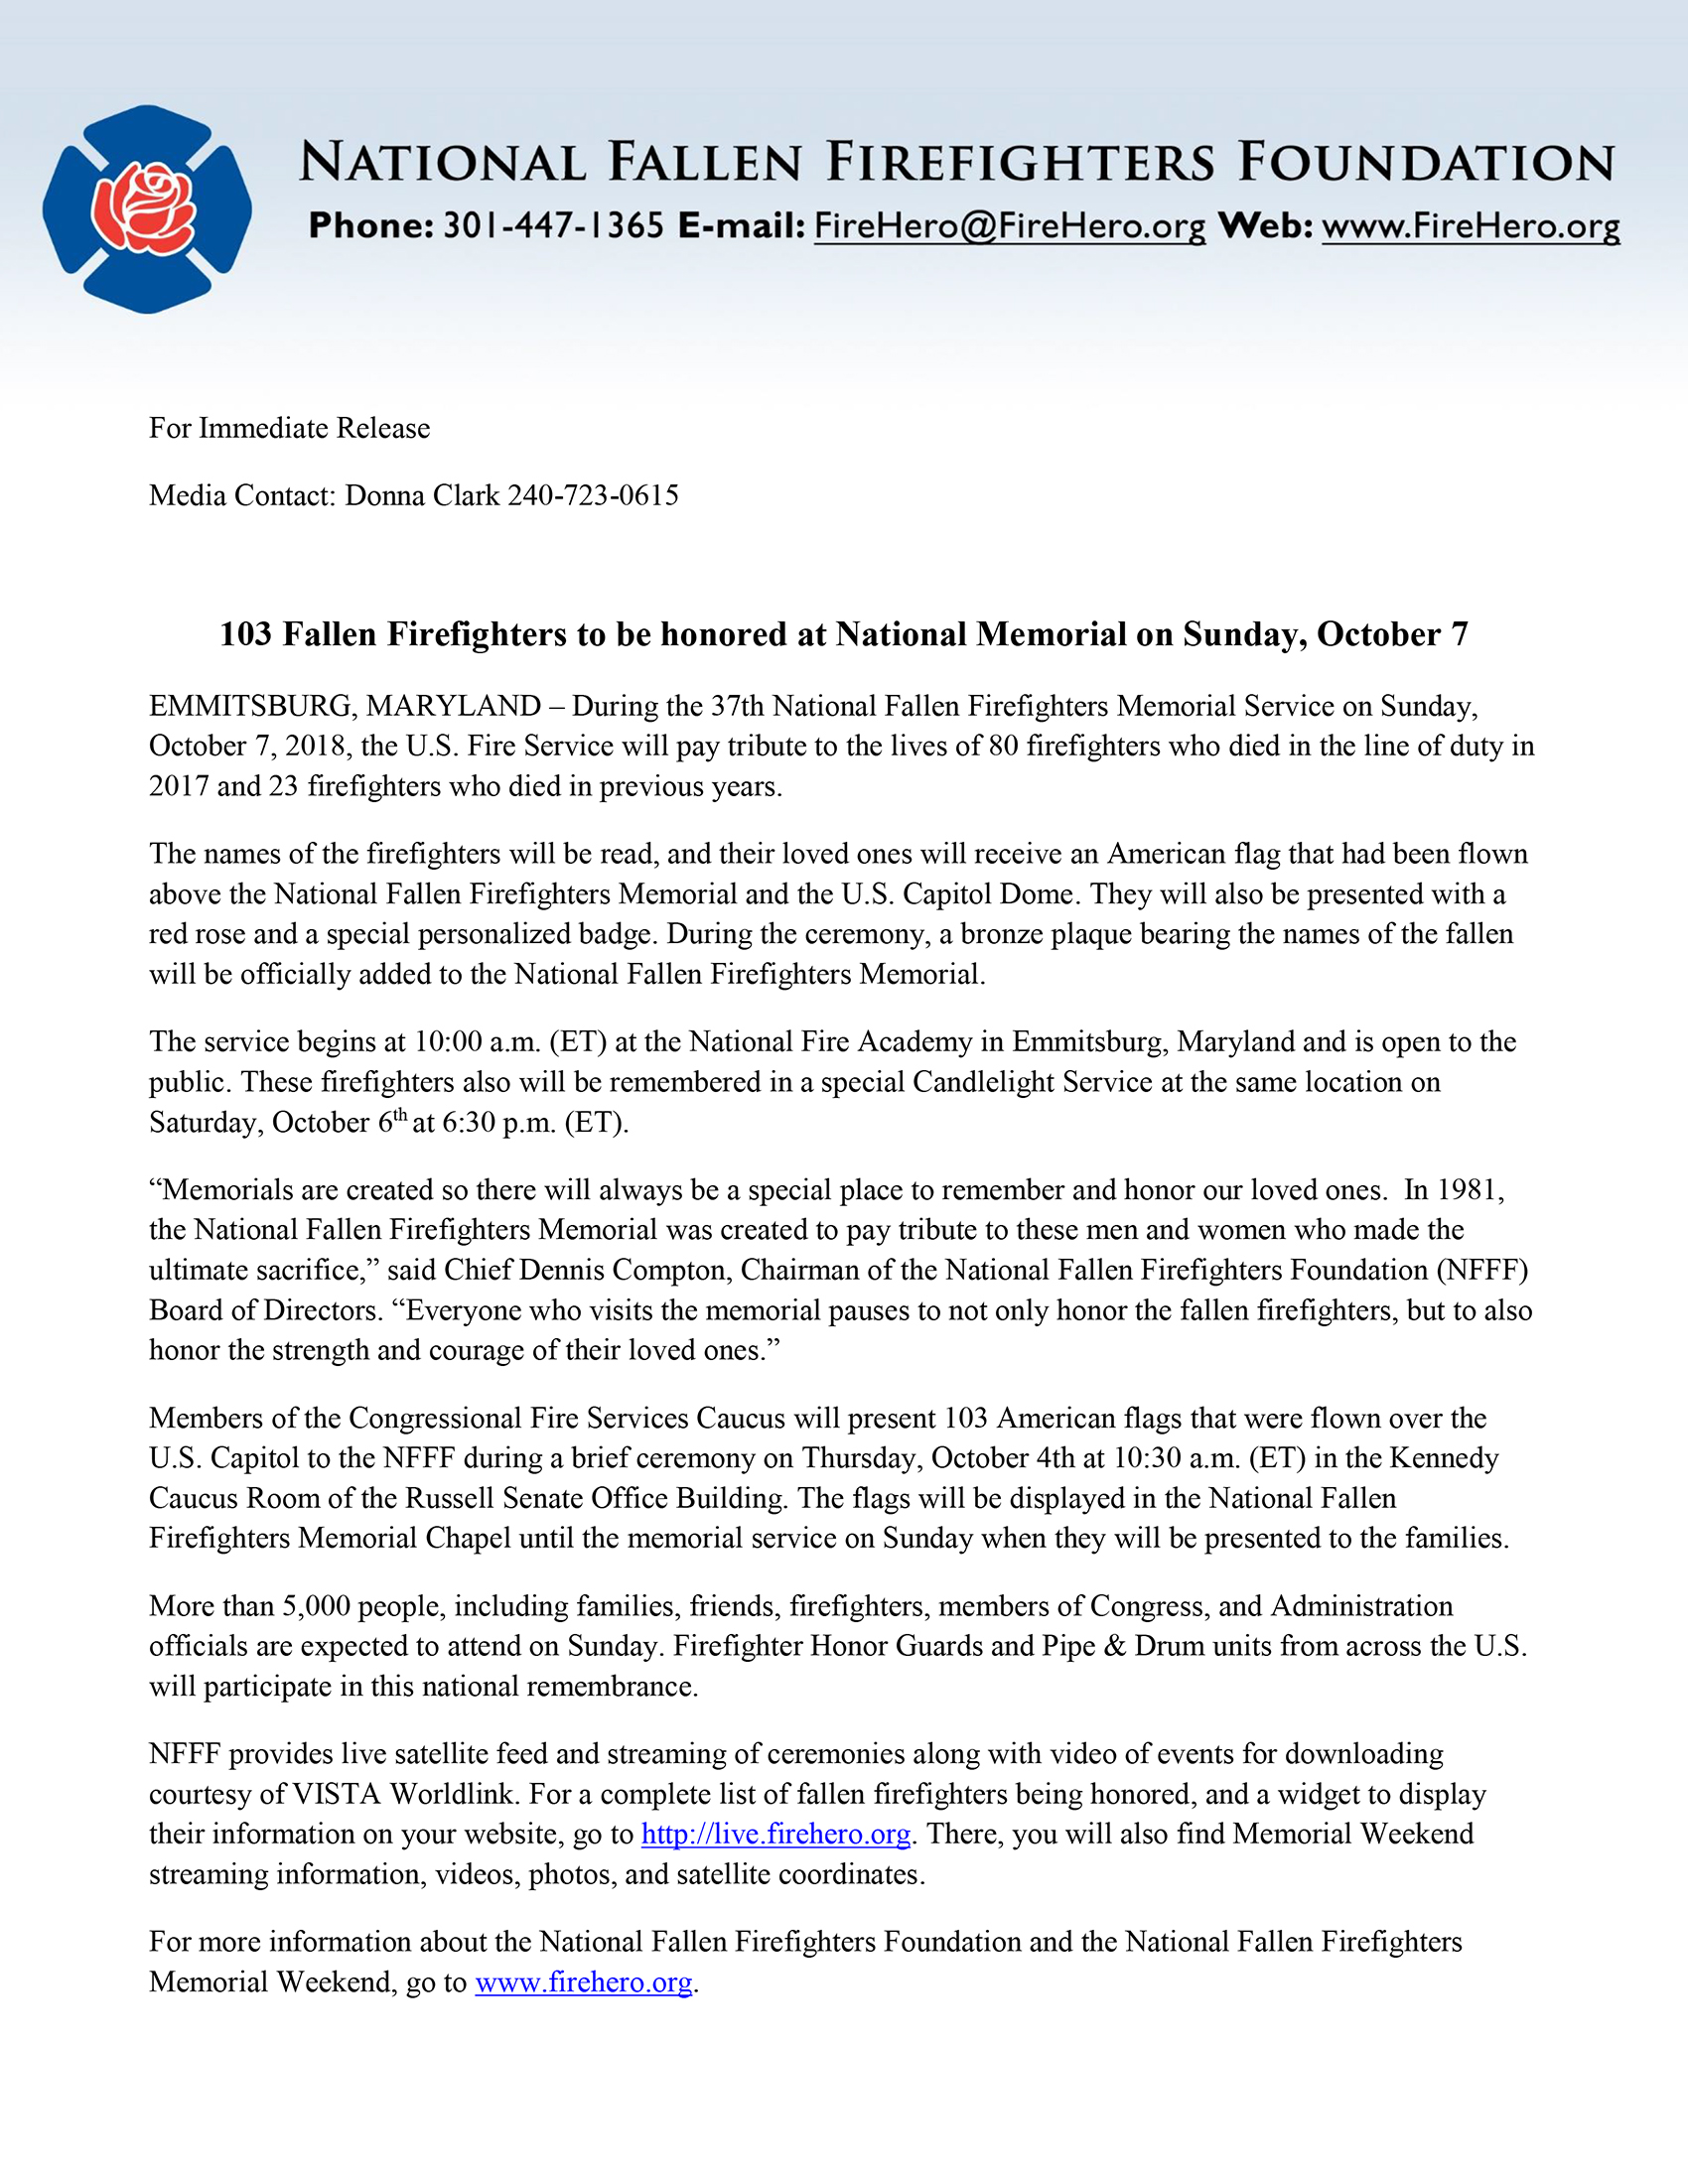 103 Fallen Firefighters to be honored at National Memorial on Sunday, October 7